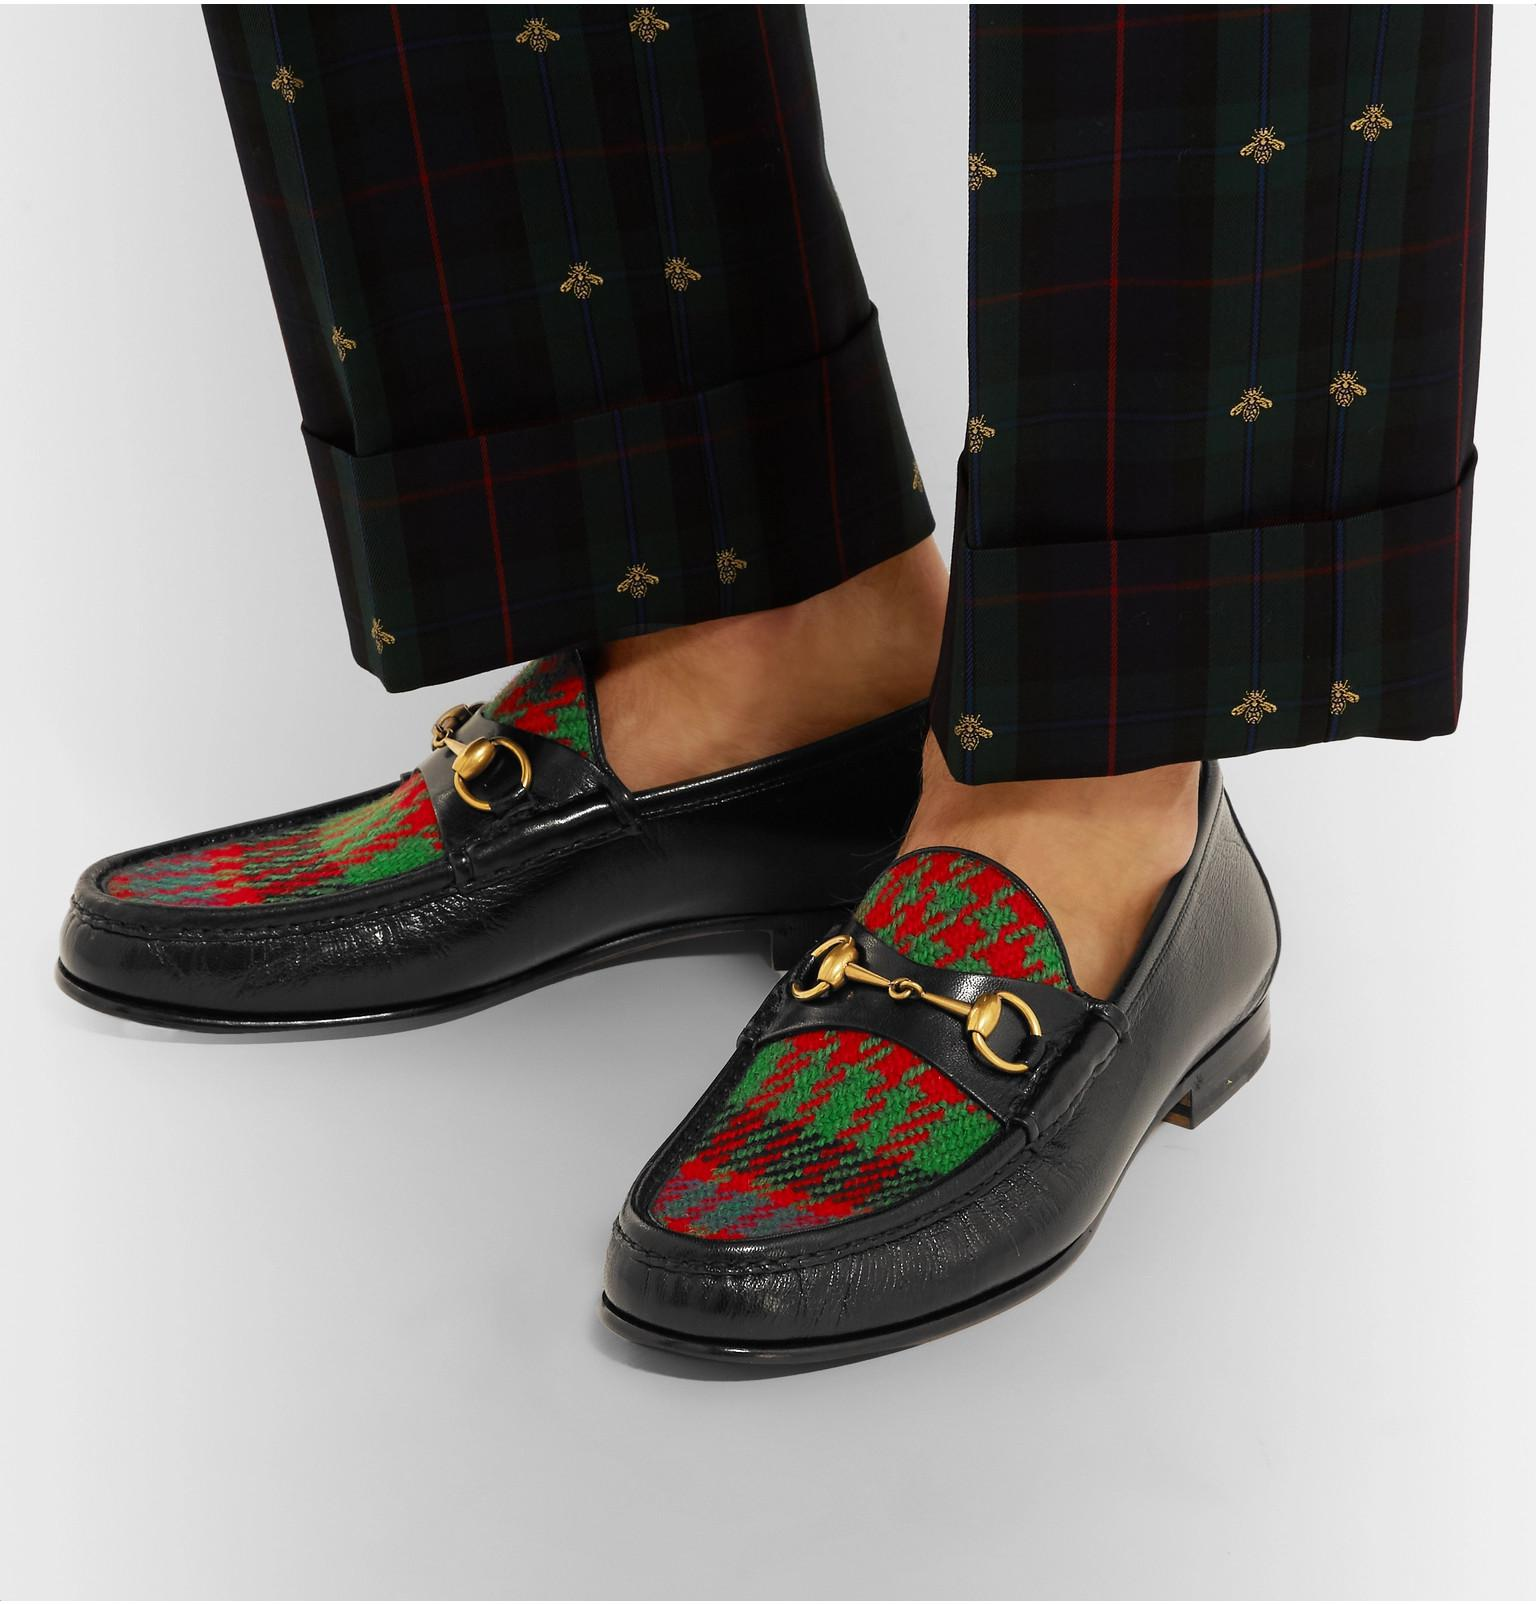 21838f589 Gucci - Black Roos Horsebit Embroidered Leather And Checked Tweed Loafers  for Men - Lyst. View fullscreen